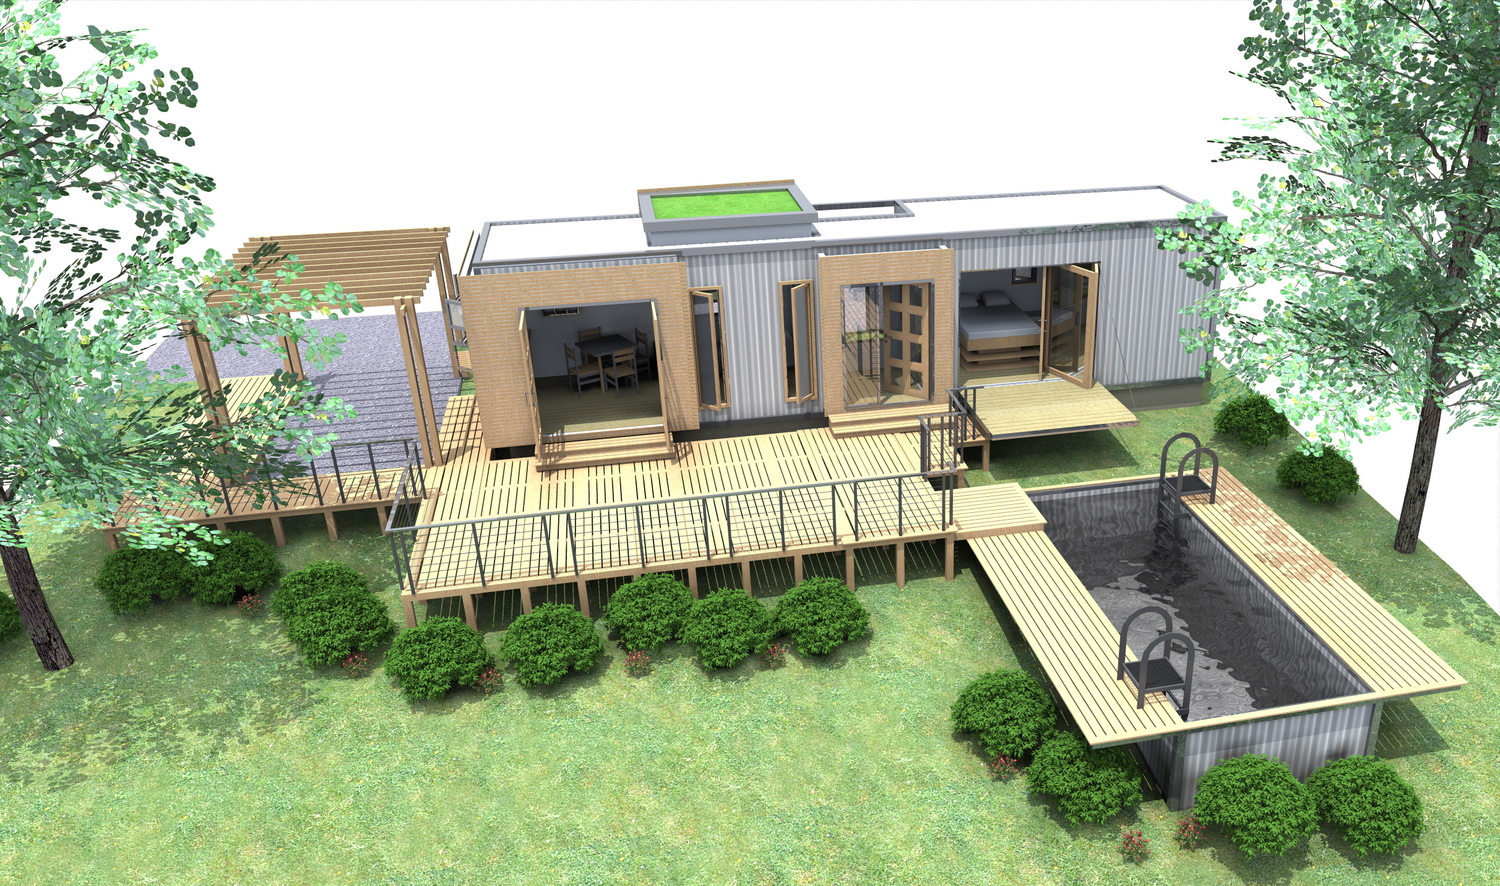 Shipping container homes june 2013 for Shipping container house plans